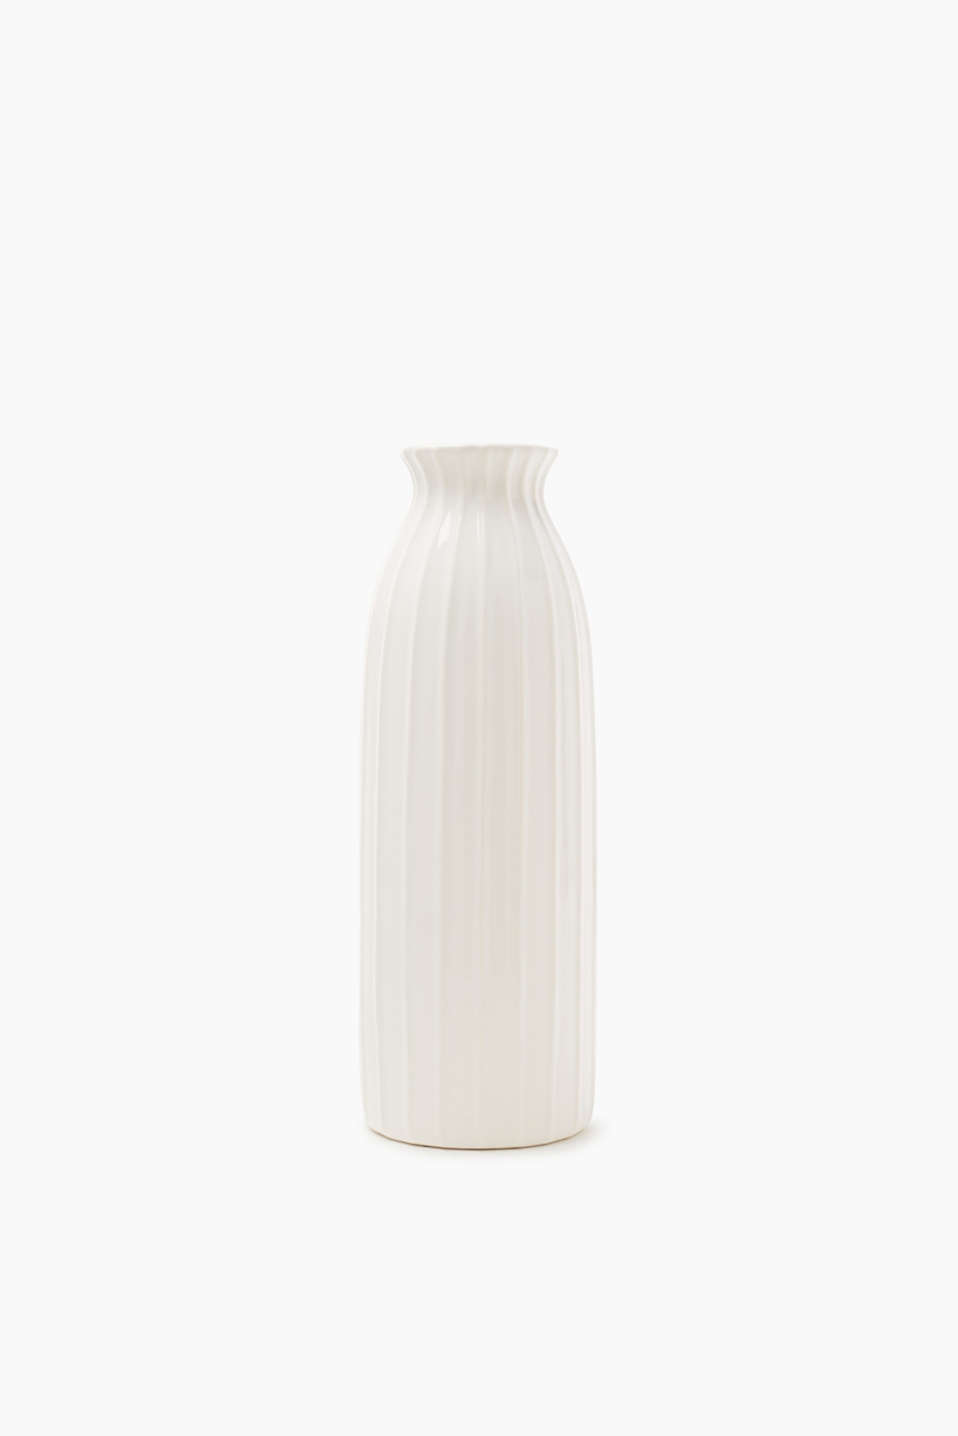 Esprit - Ceramic vase with textured stripes